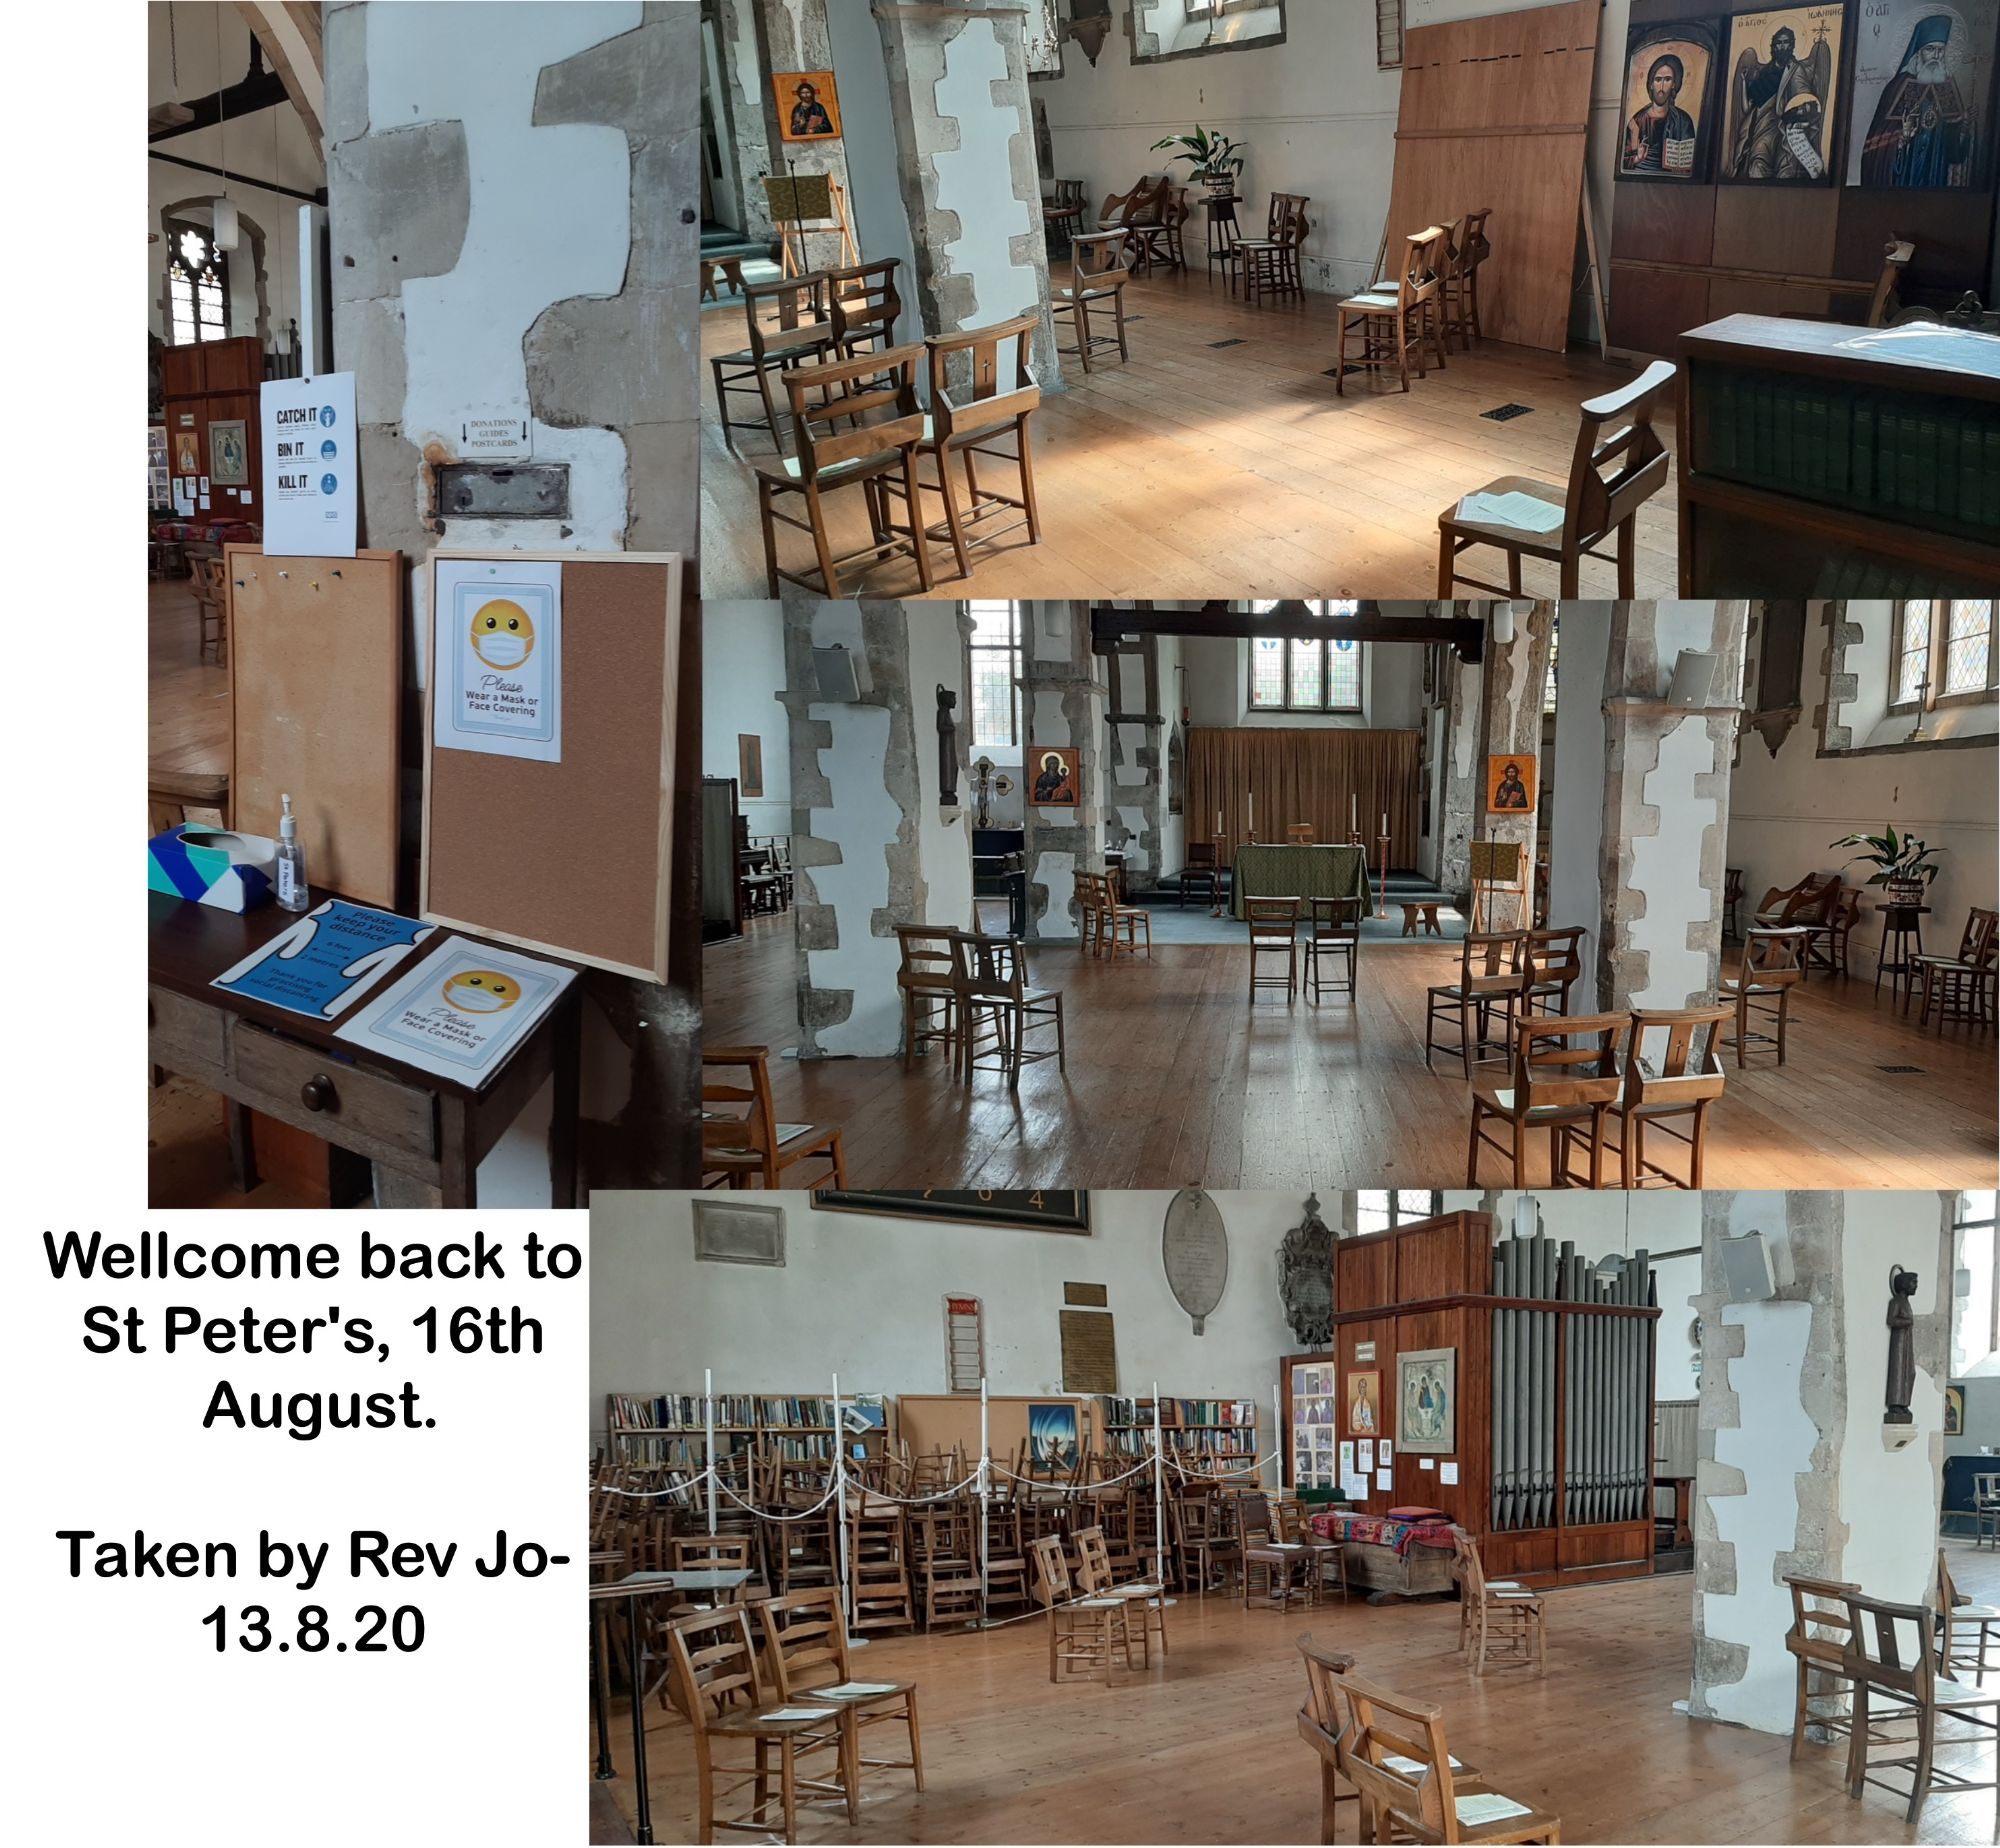 Wellcome back to St Peter's, 16th August.